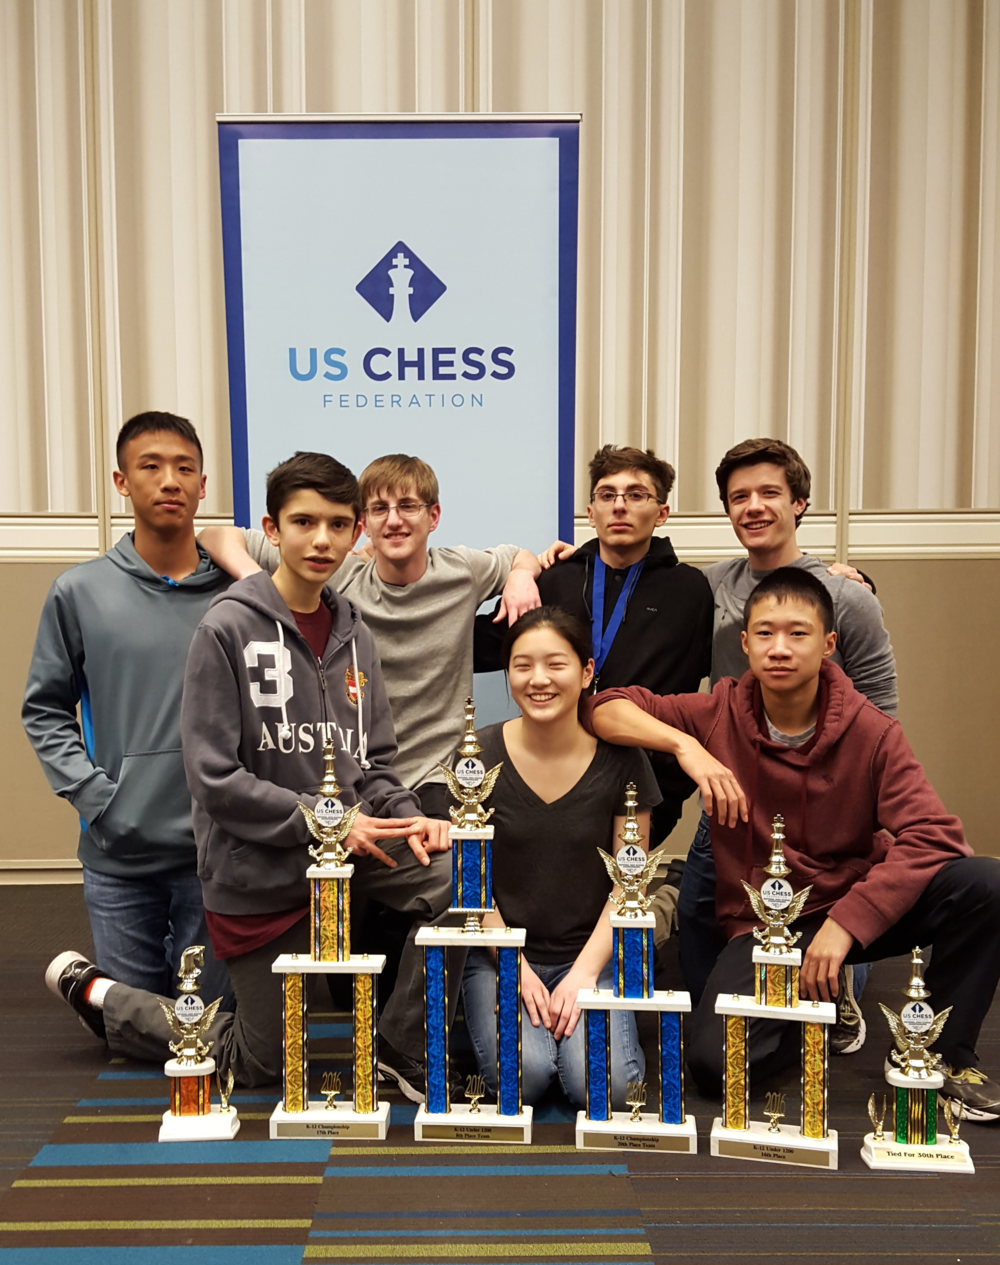 High Tech chess team members with some of the hardware they captured recently at the National Chess Tournament in Atlanta.